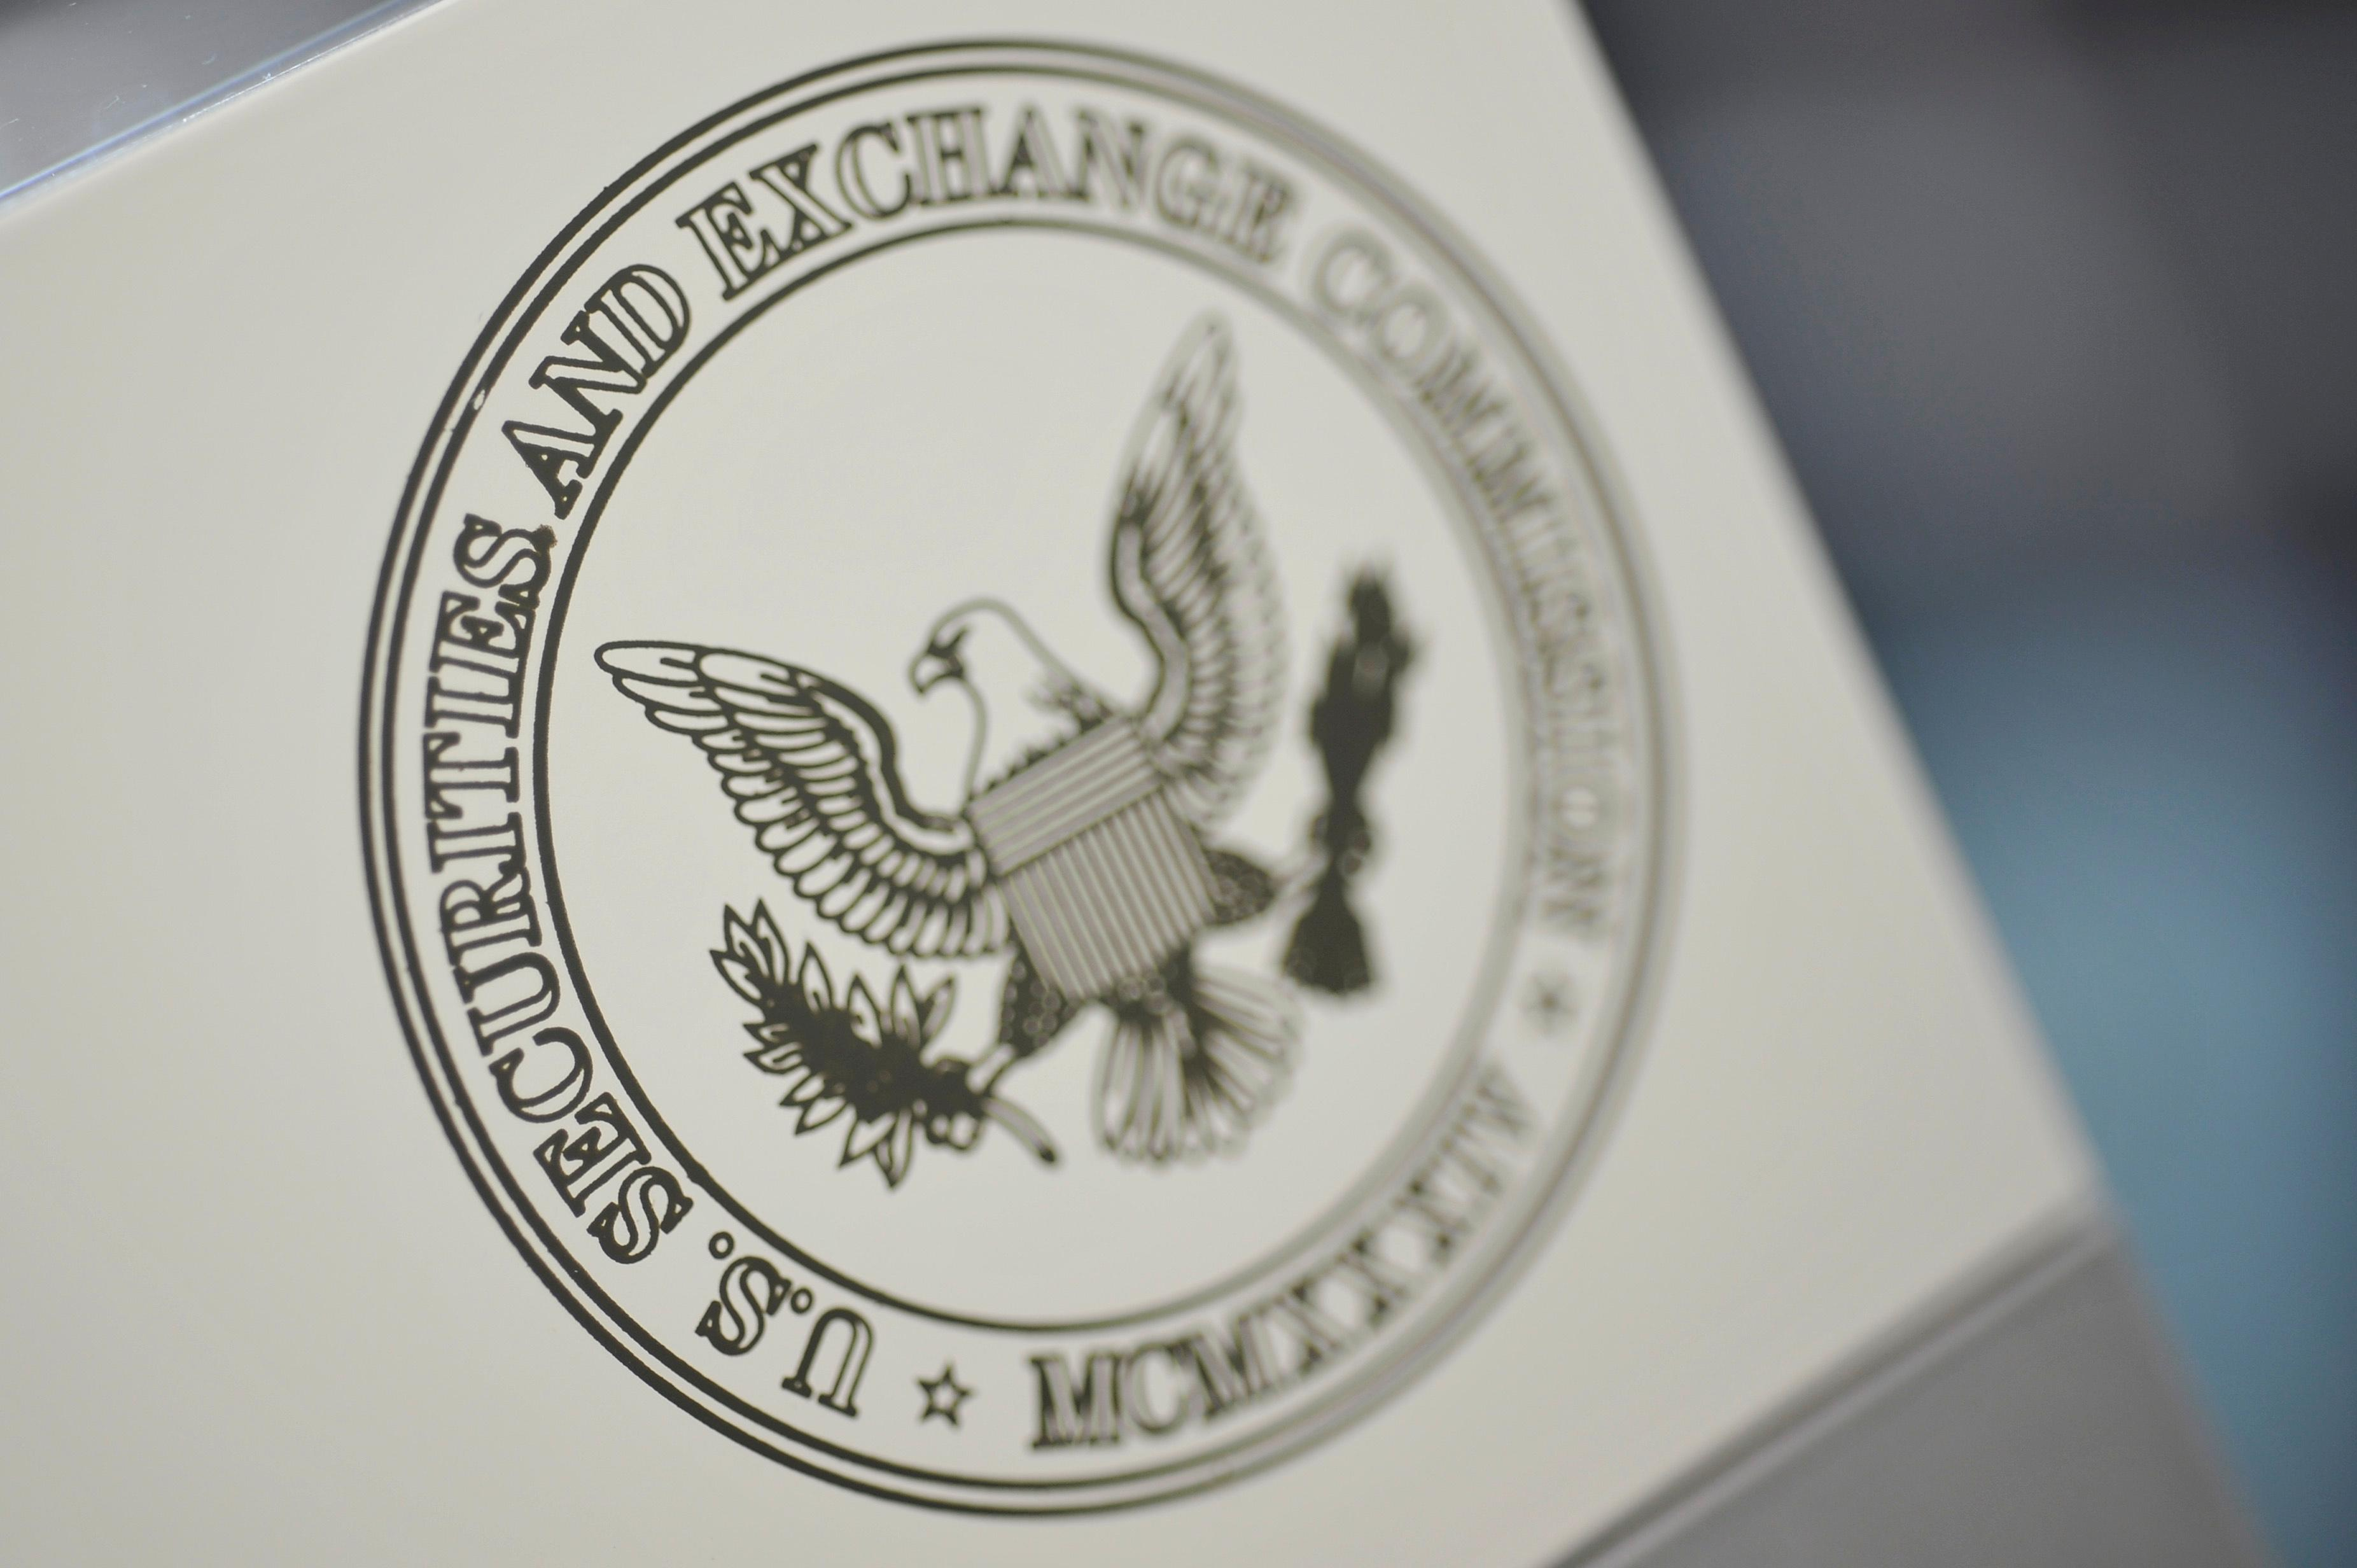 Digital assets subject to money-laundering, disclosure laws: U.S....